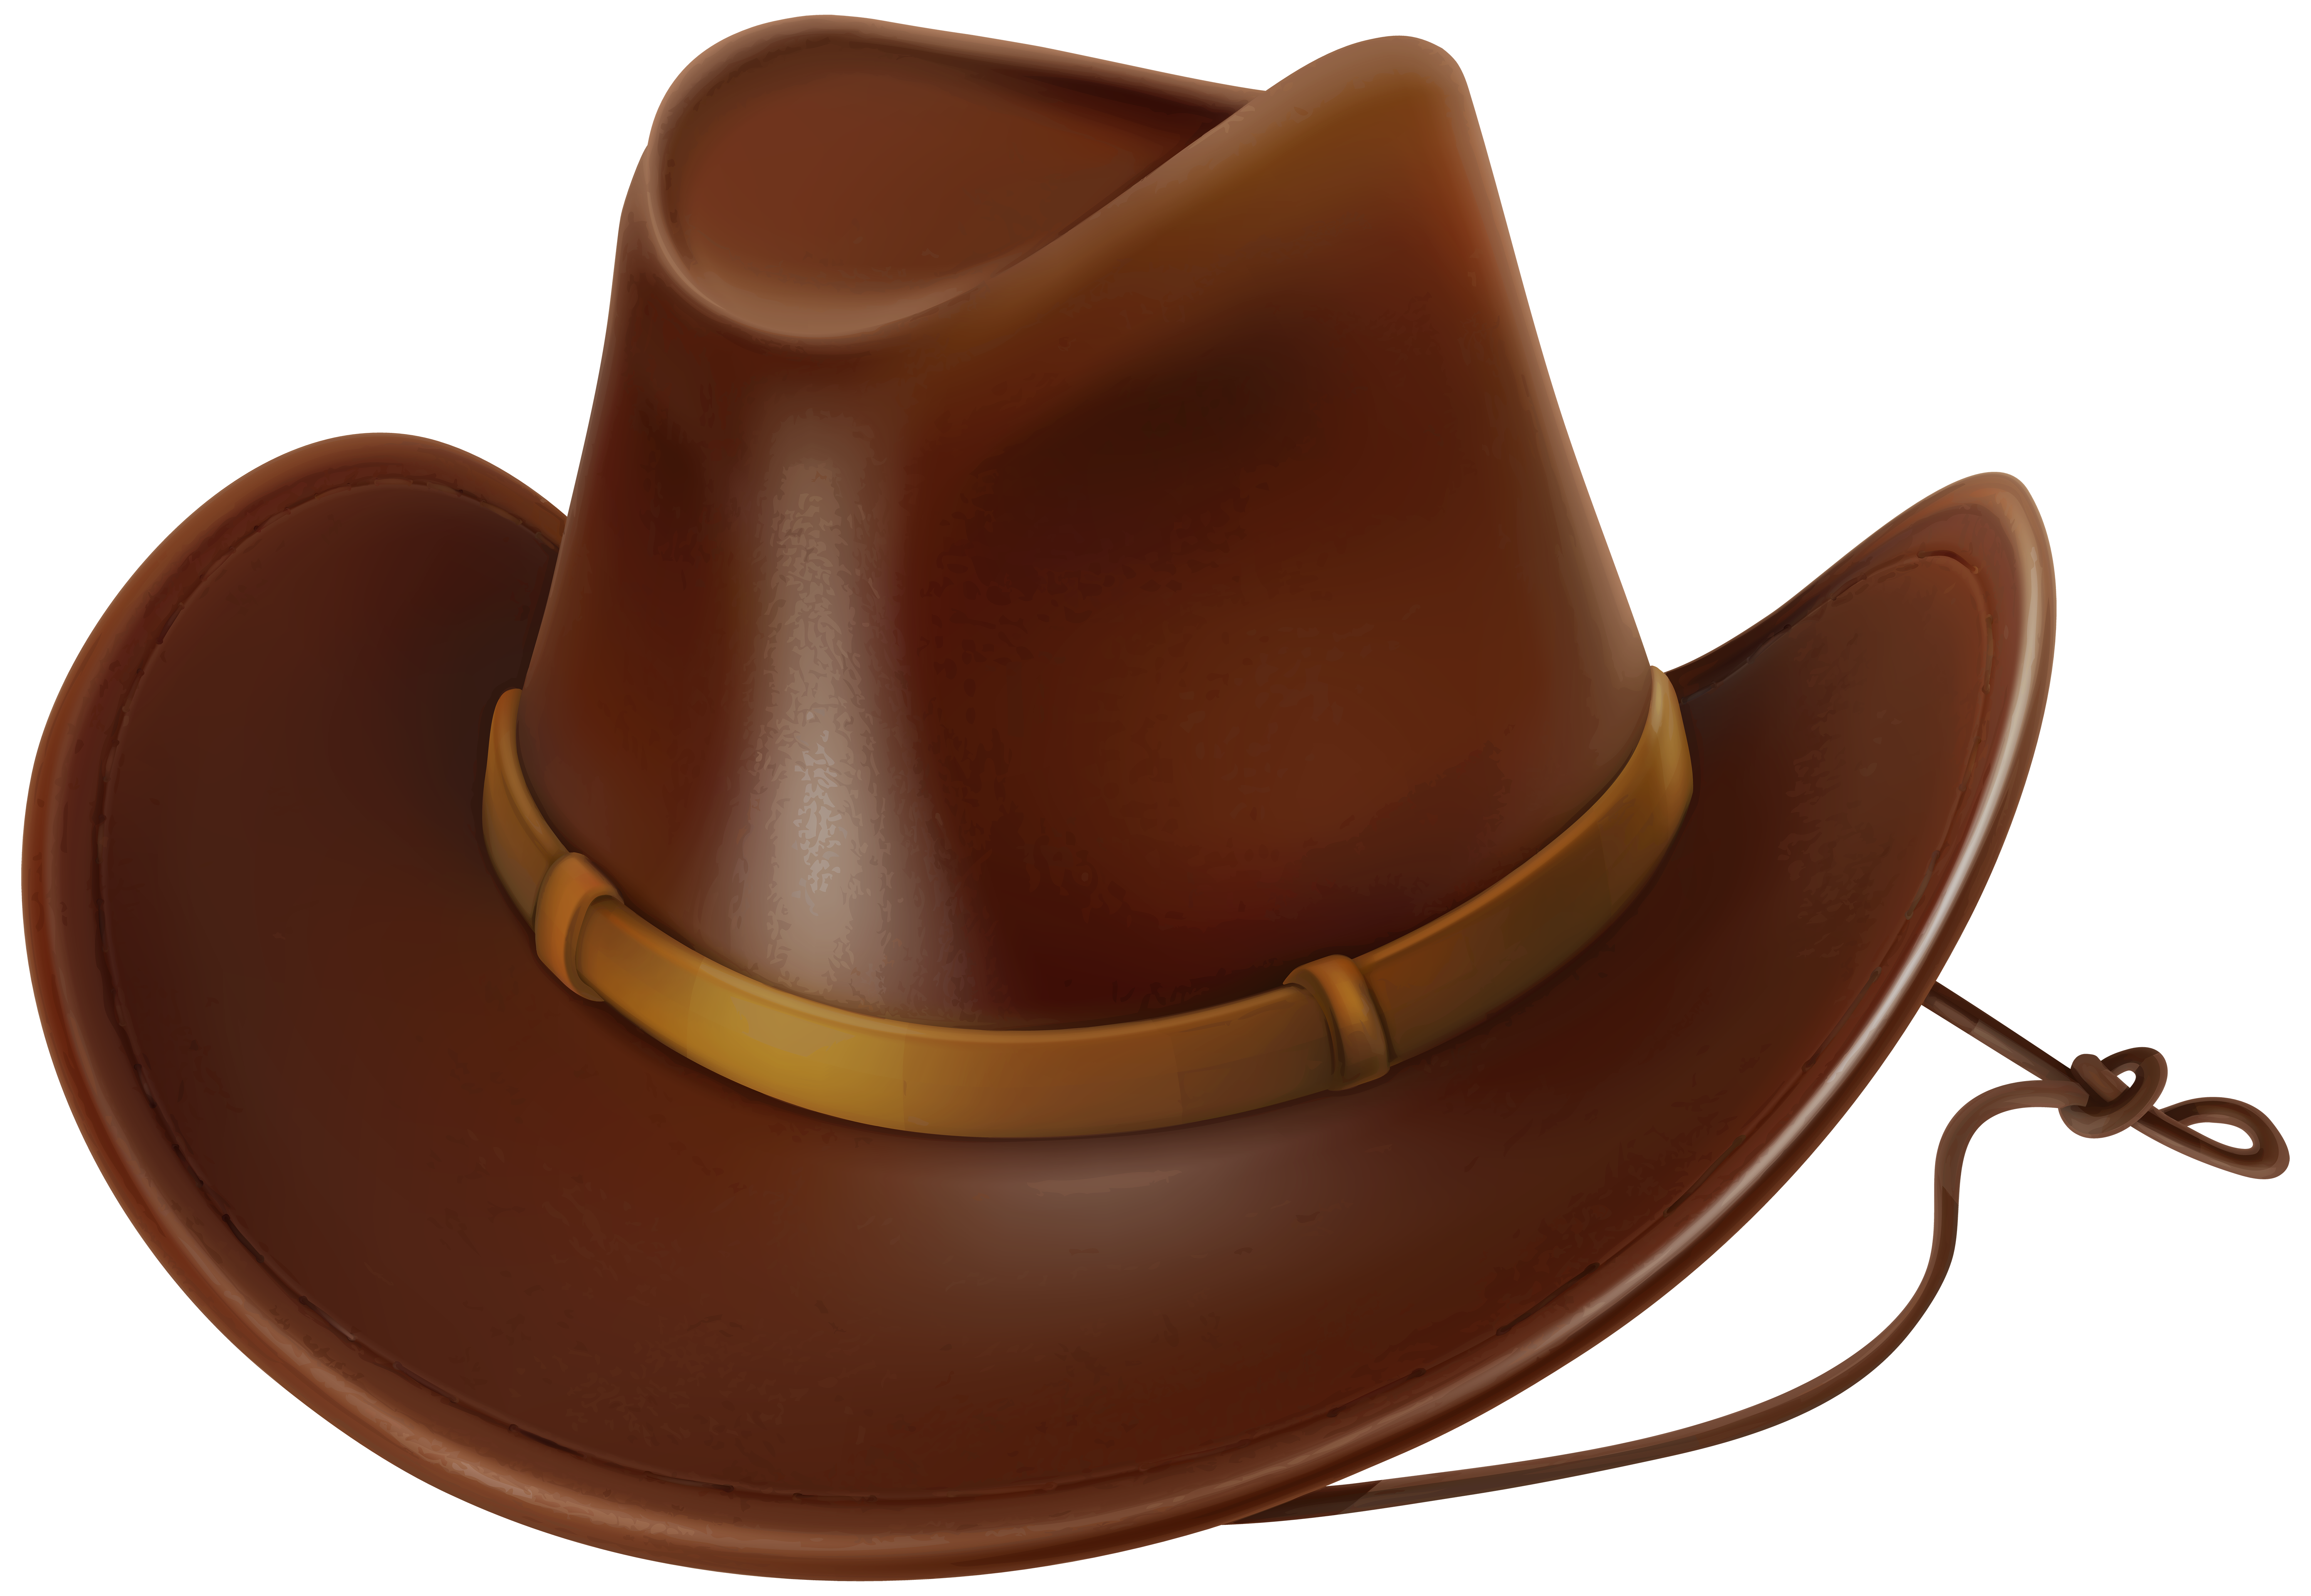 Western sun clipart banner freeuse Cowboy Hat Clipart at GetDrawings.com | Free for personal use Cowboy ... banner freeuse